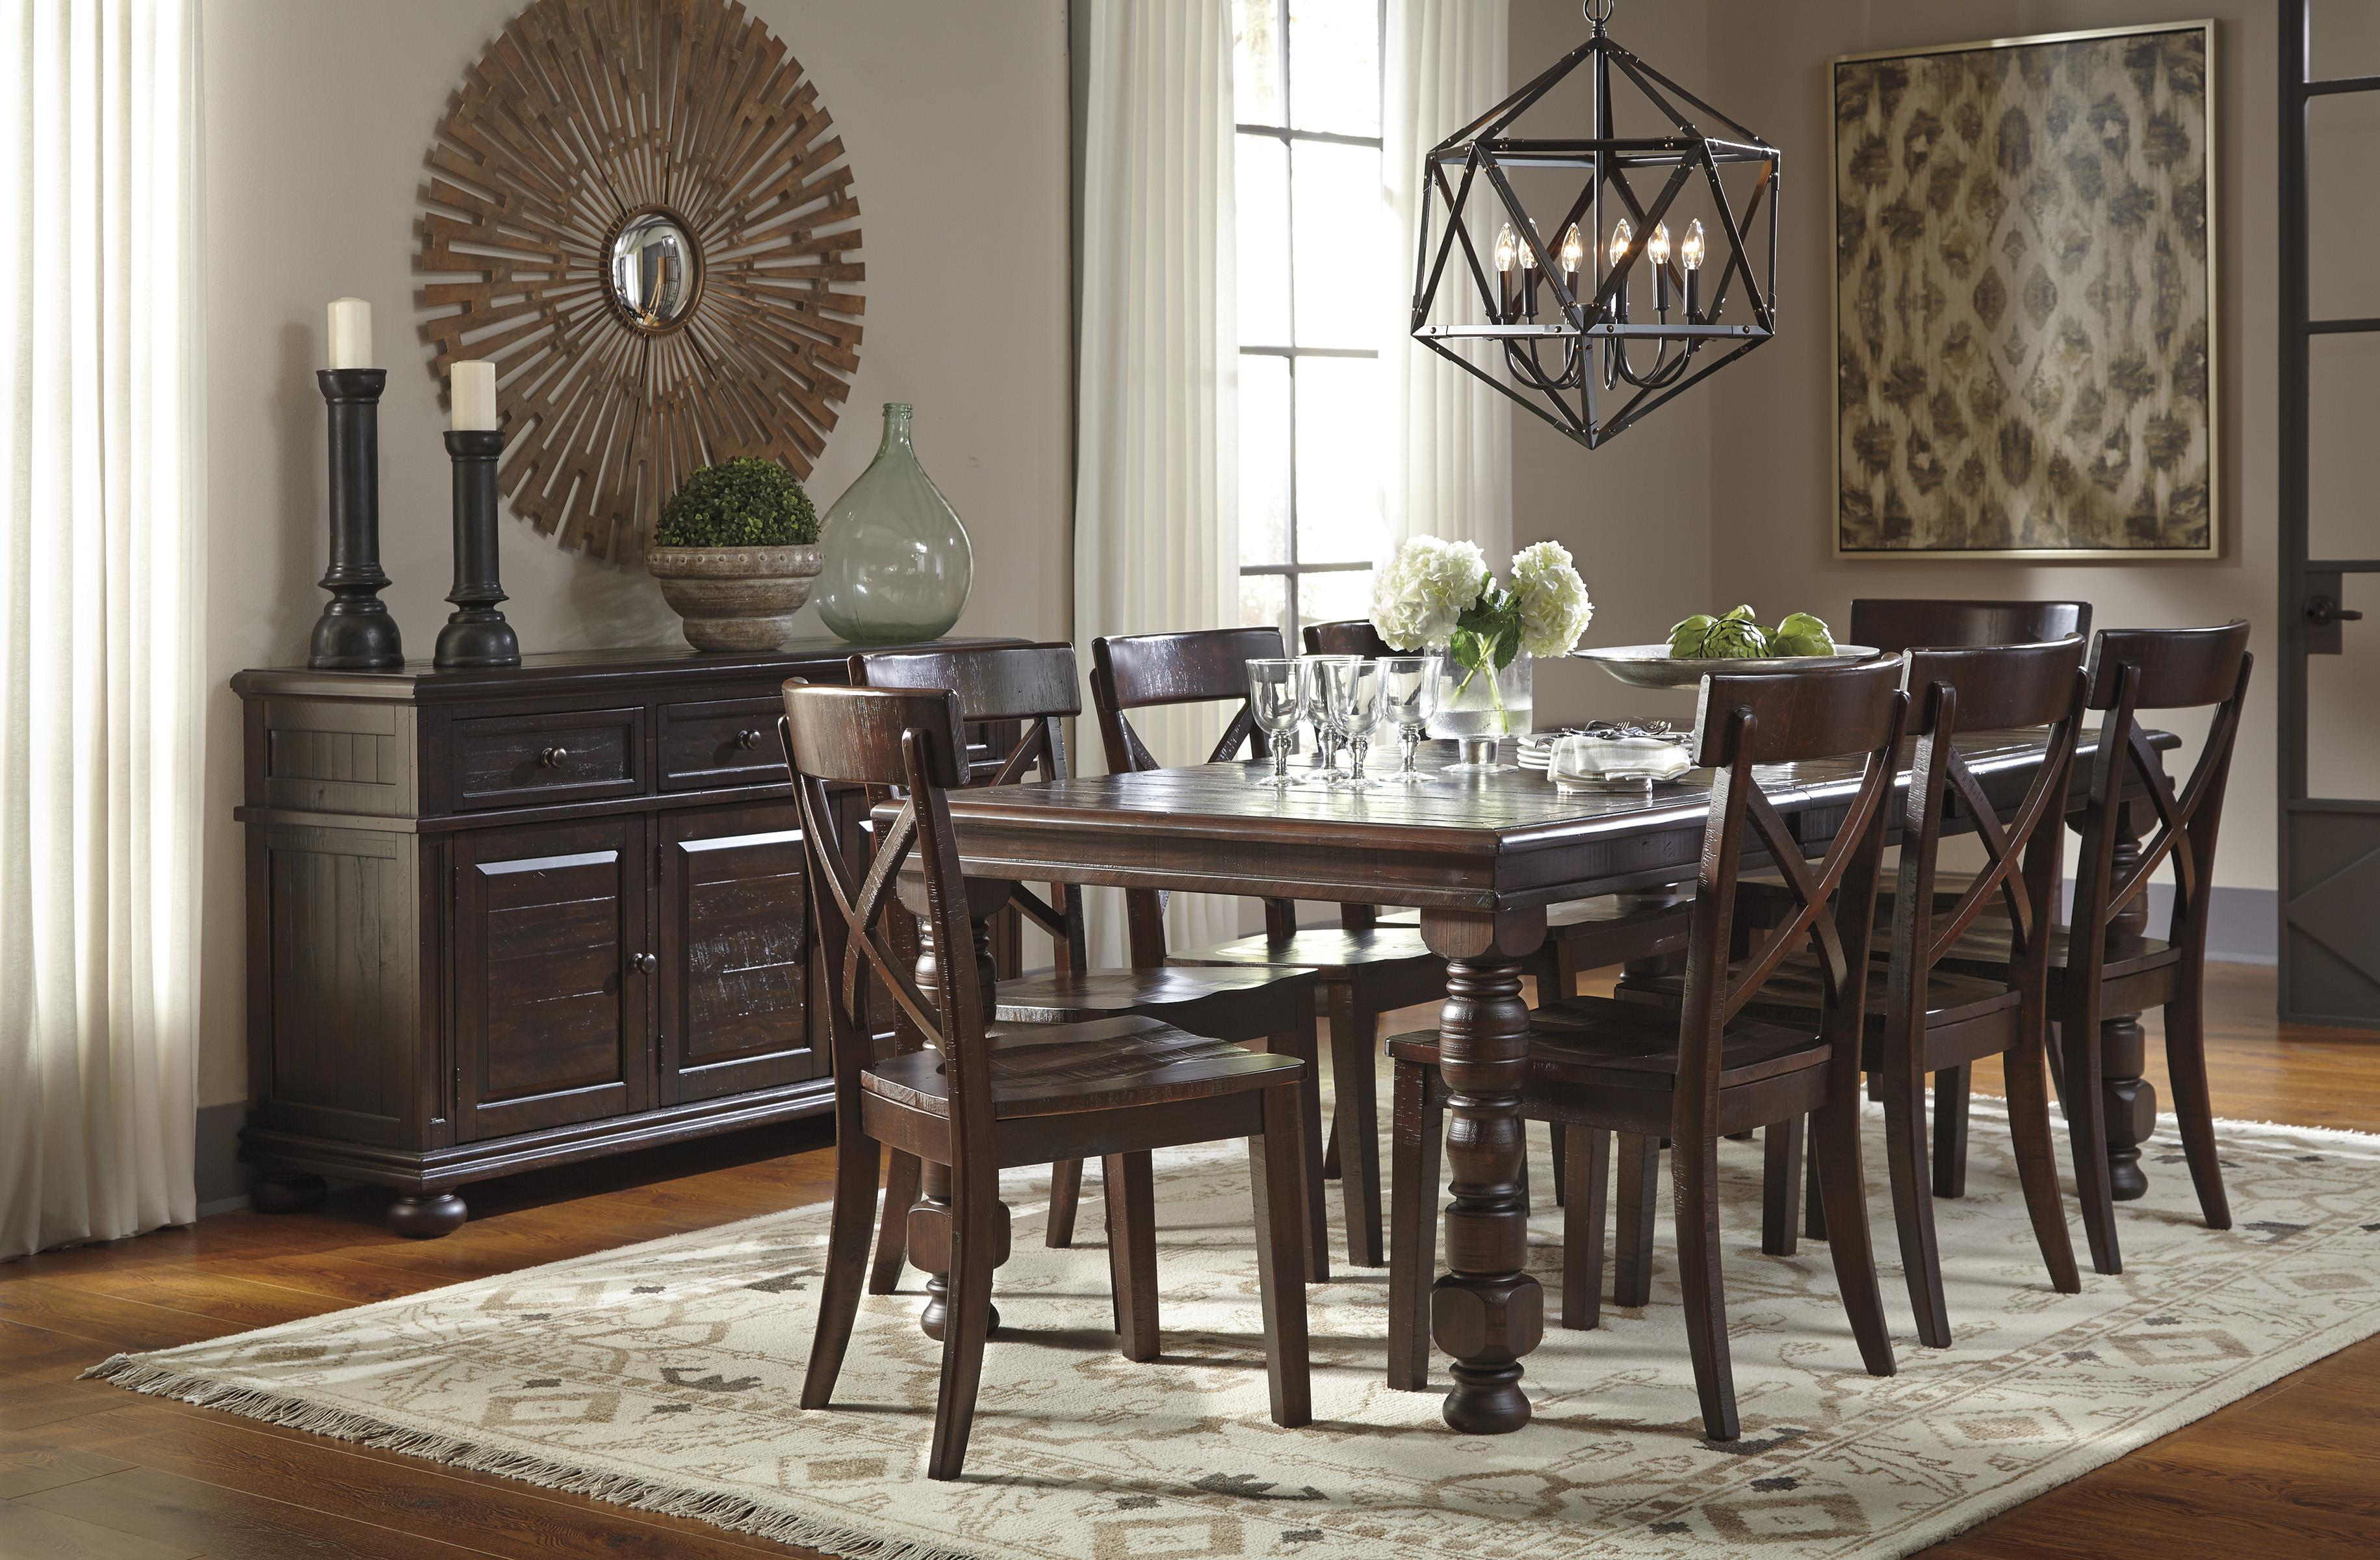 Signature Design by Ashley Gerlane Casual Dining Room Group - Item Number: D657 Dining Room Group 3